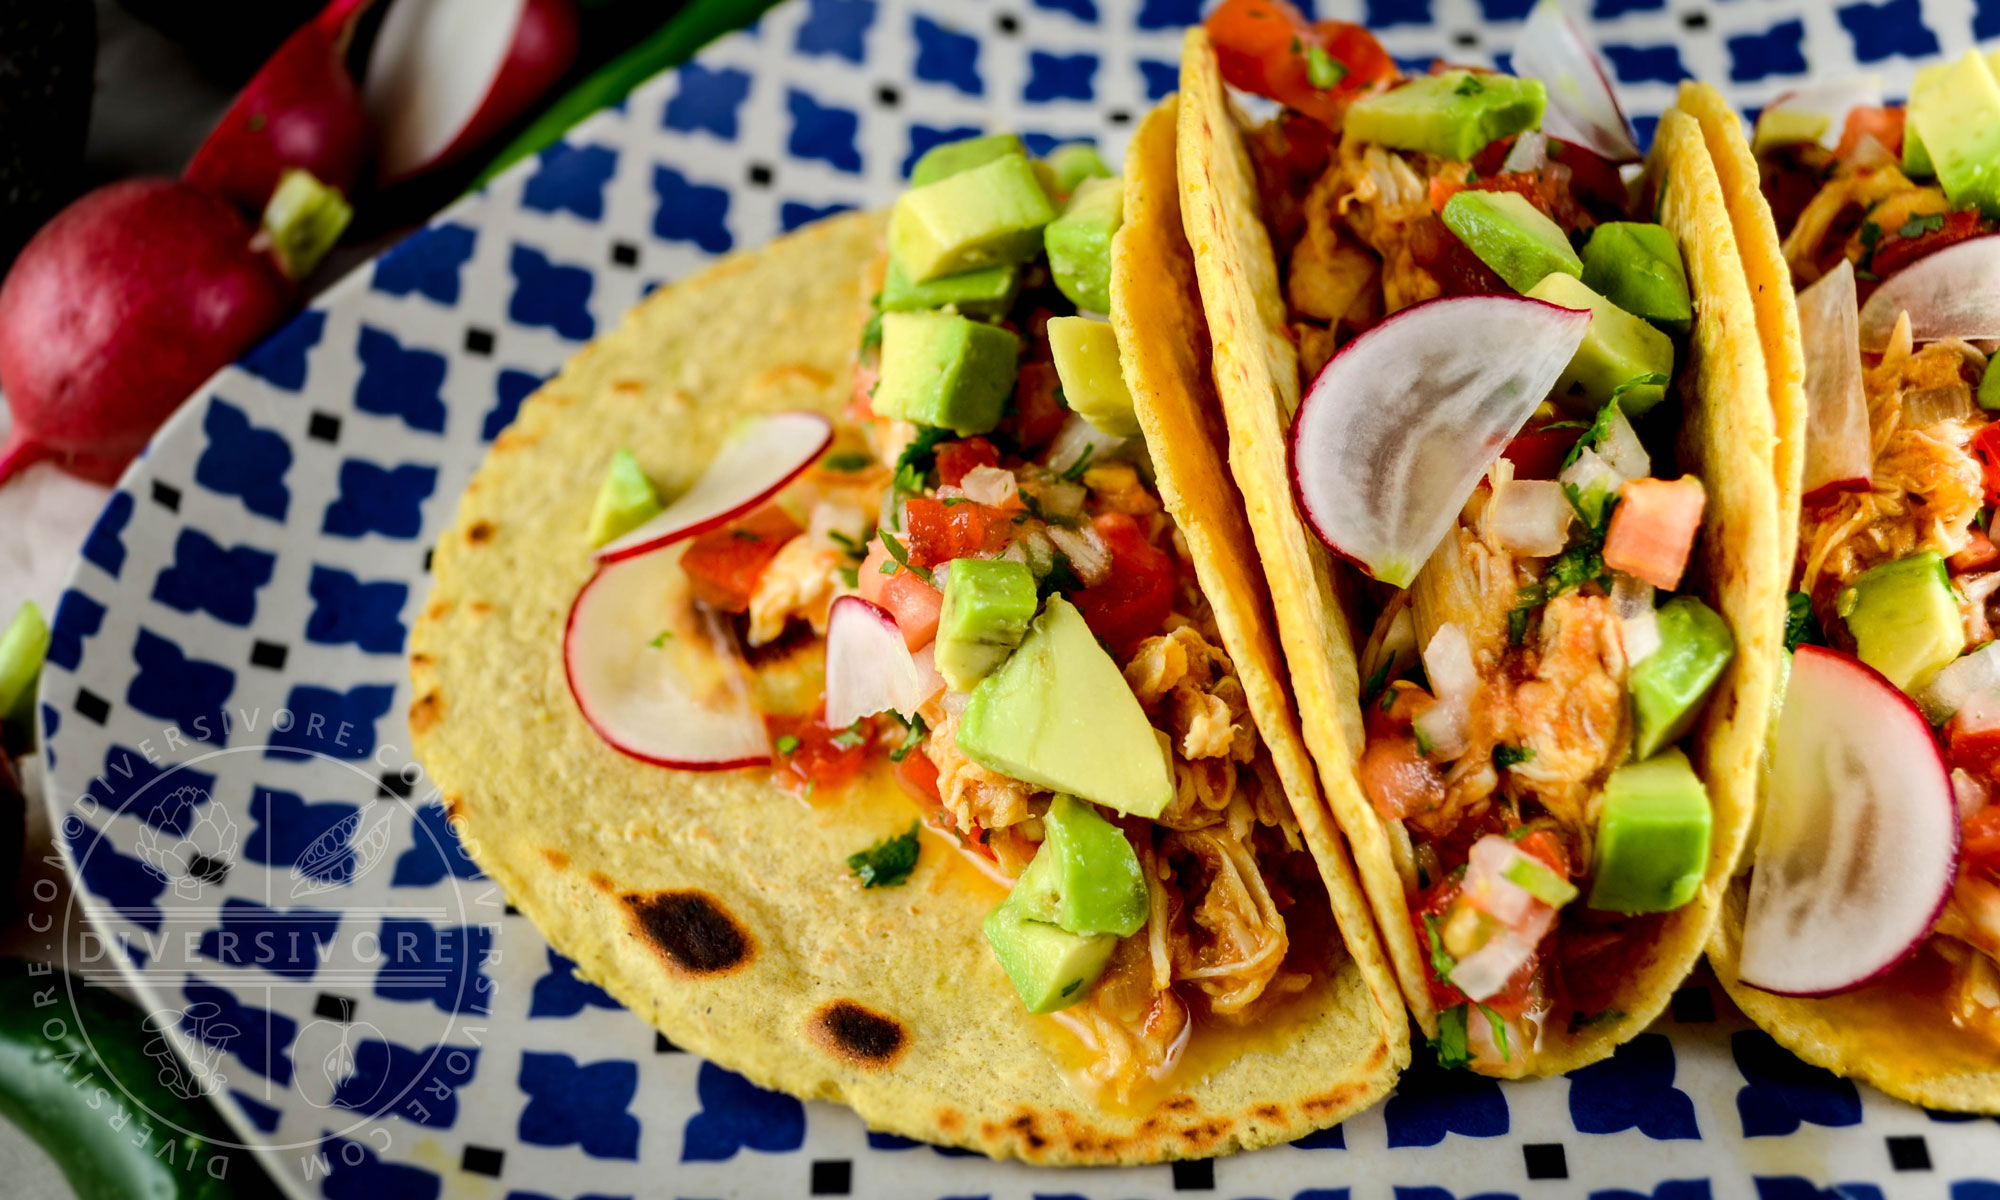 Chicken tinga, served as tacos with pico de gallo, avocados and cheese - Diversivore.com